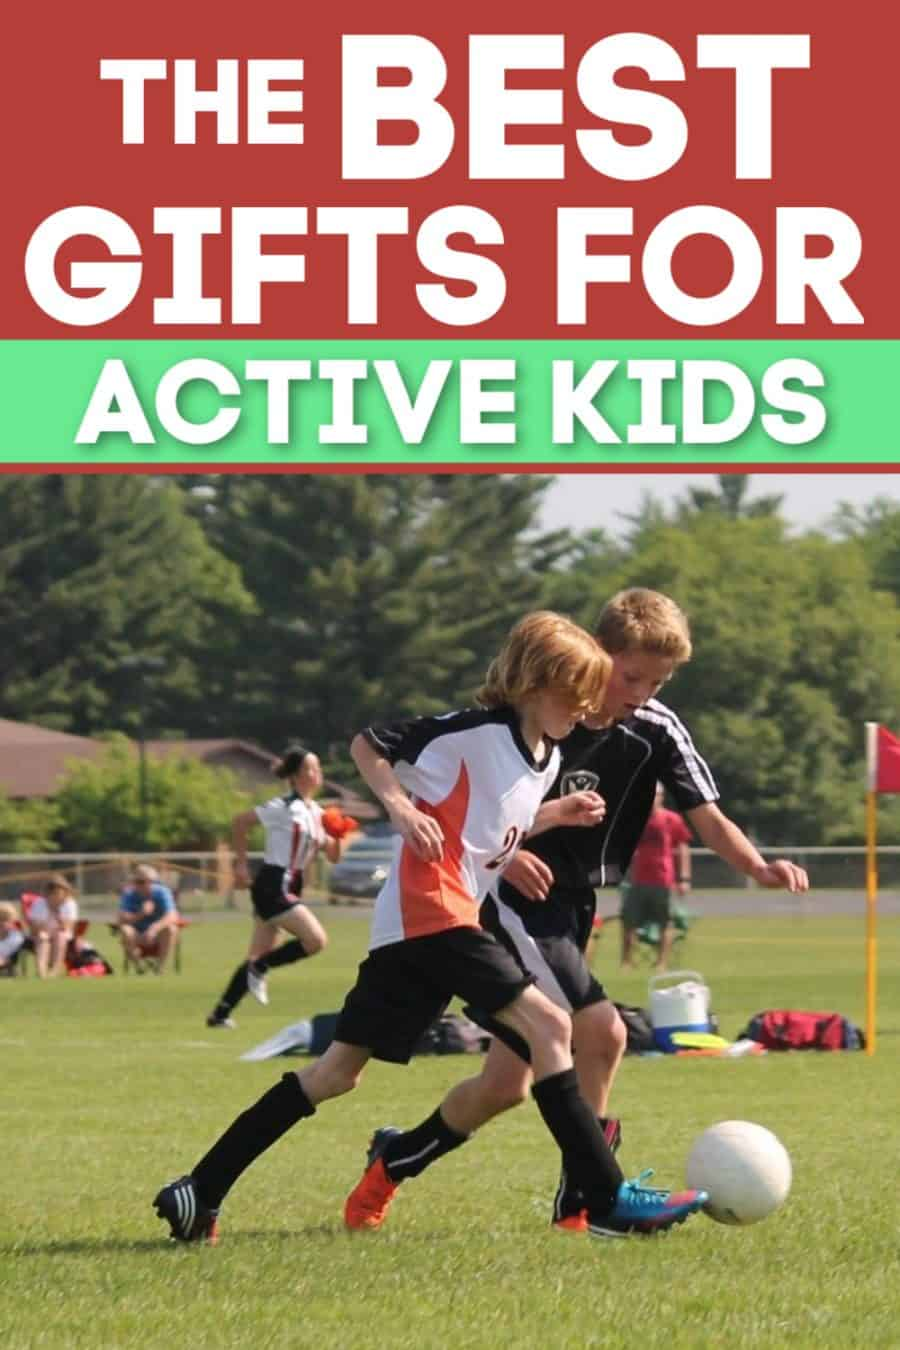 Best-Gifts-for-active-kids-1-900x1350.jpg